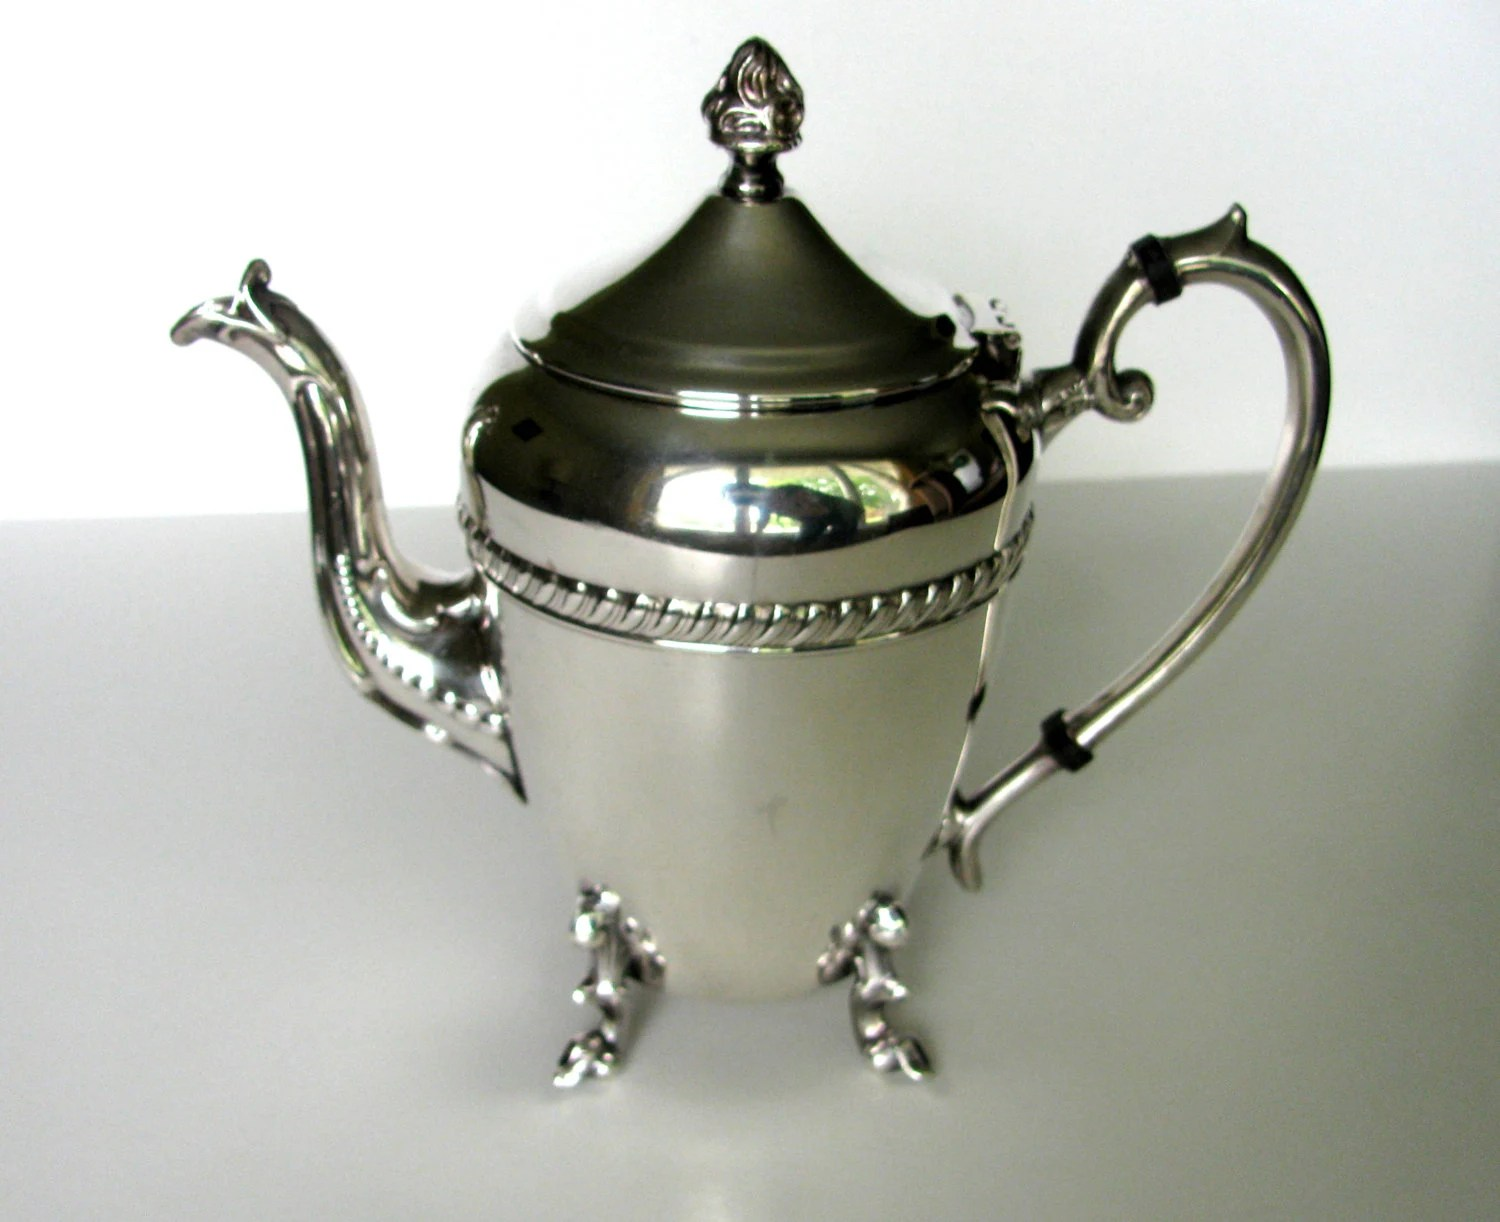 Looking For Teapots Vintage Teapot Crosby Silver Plate Teapot Coffee Pot Downton